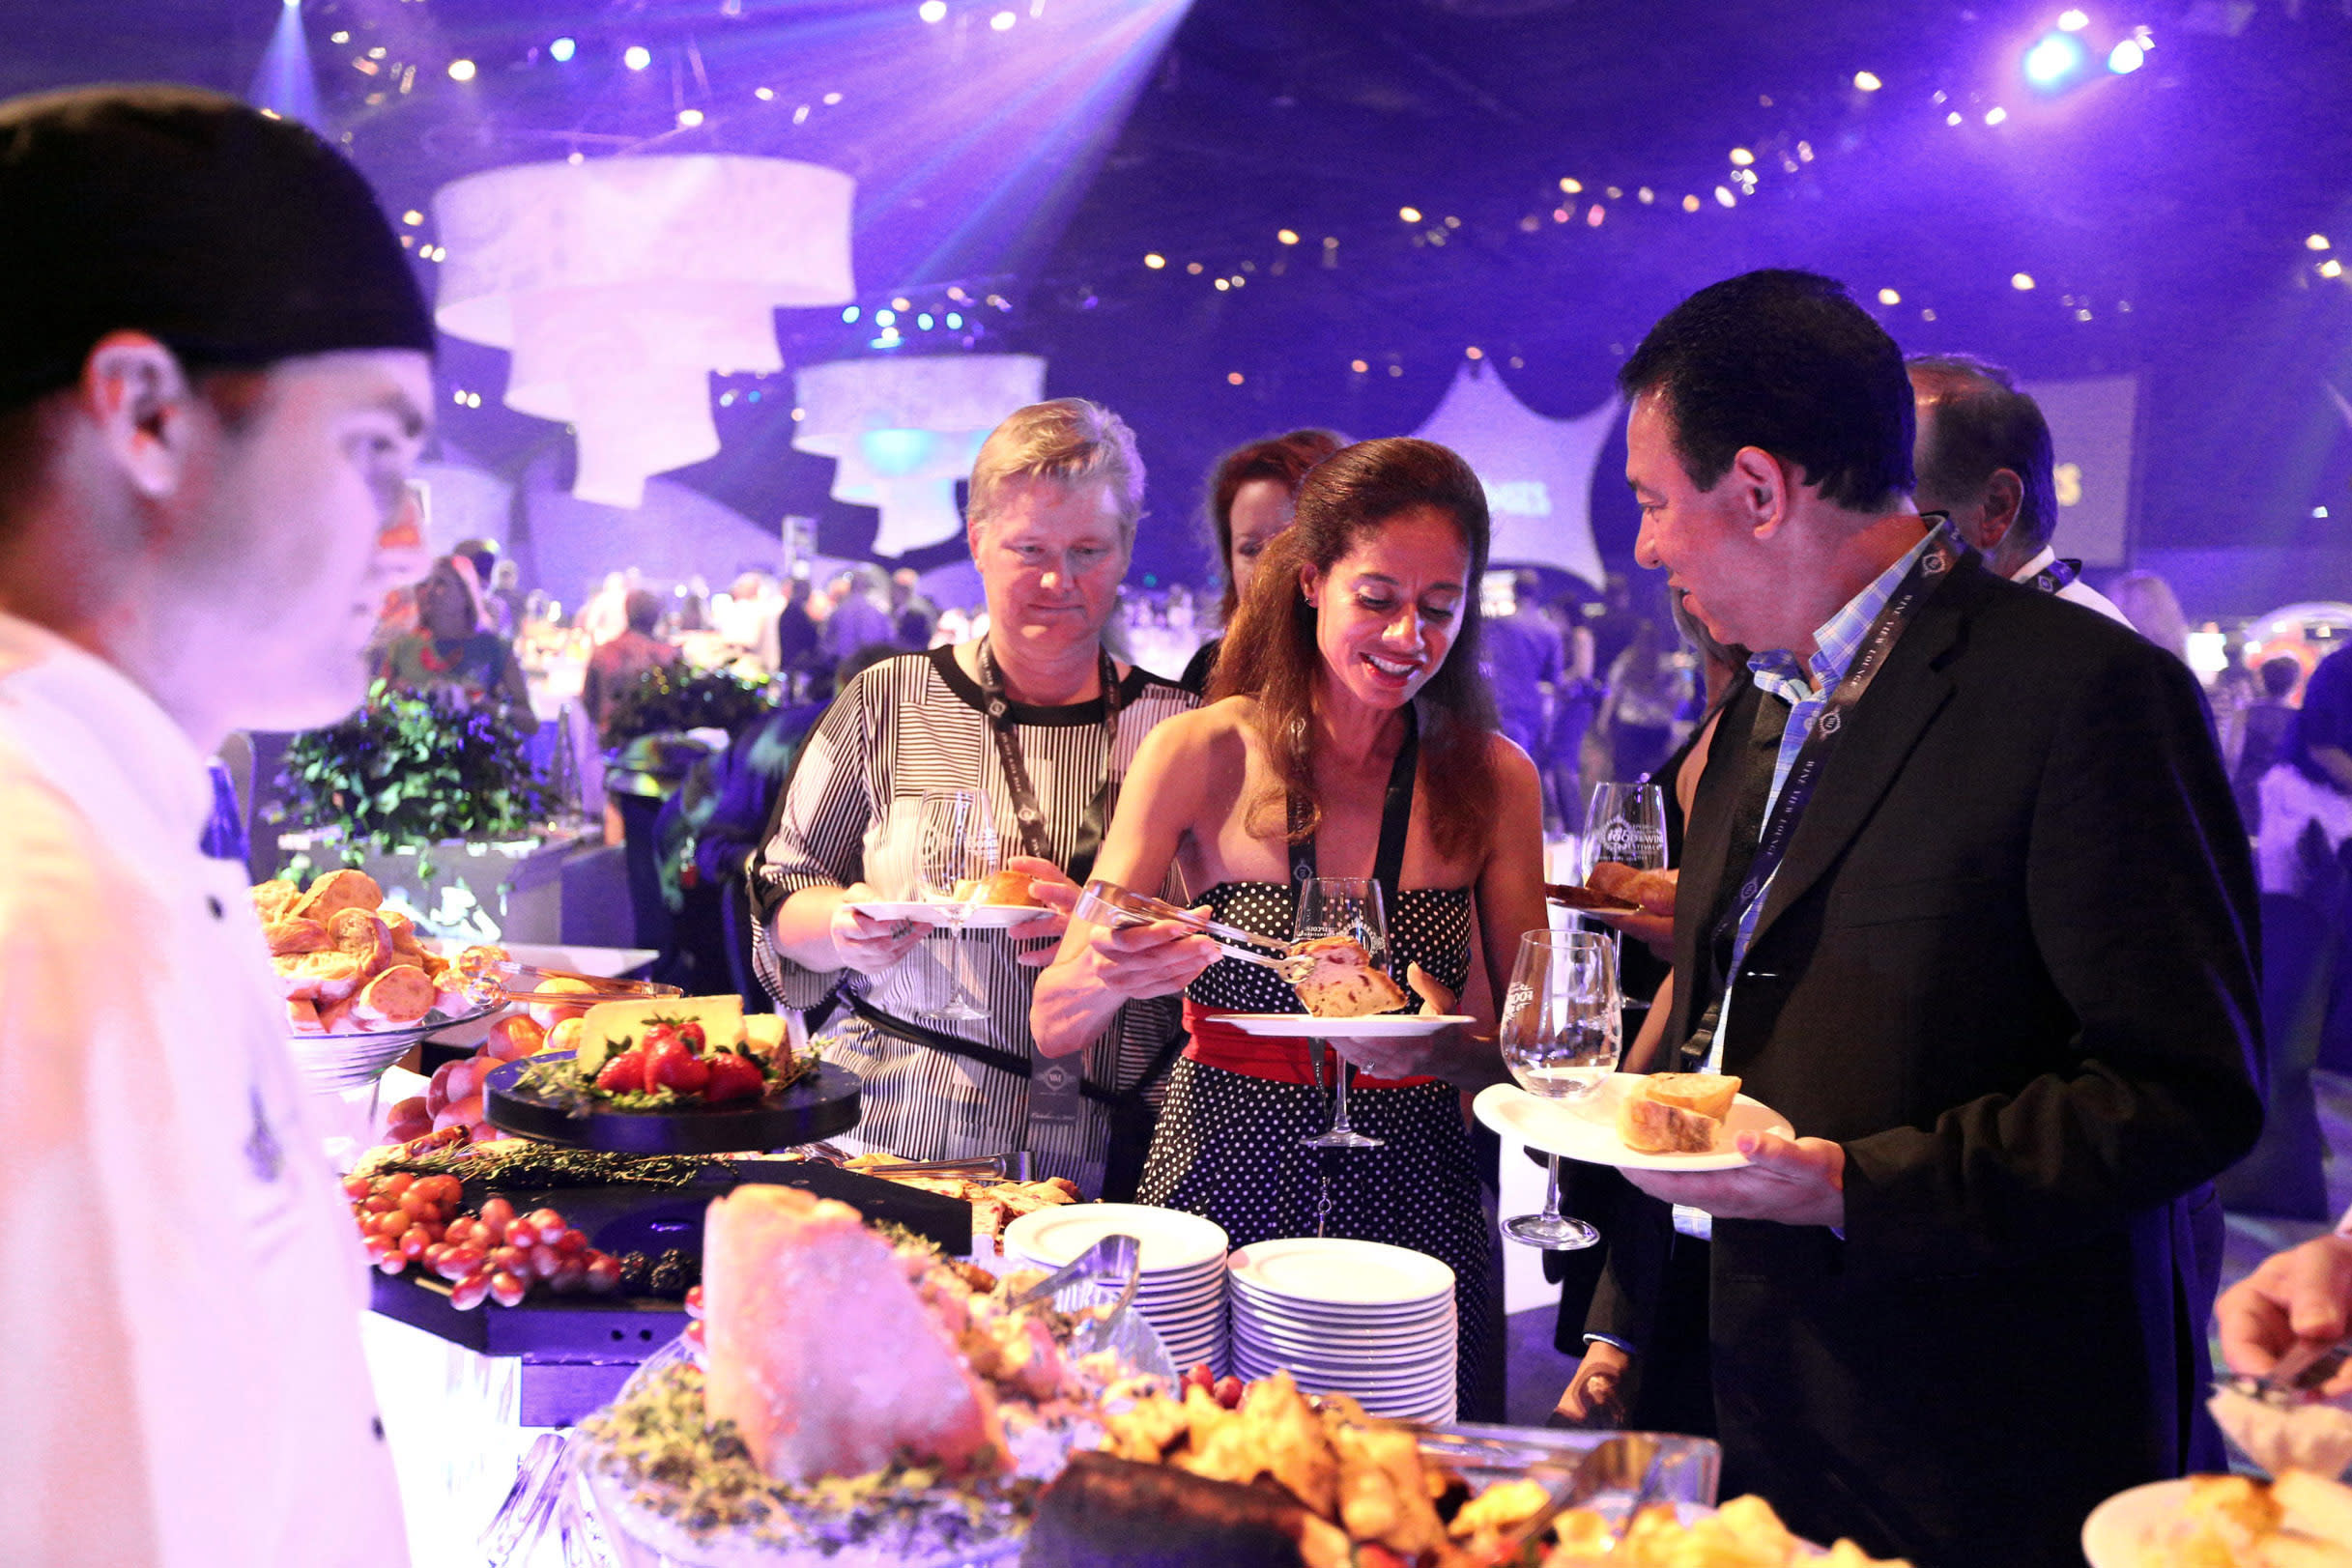 Party for the Senses at Epcot International Food & Wine Festival at Walt Disney World Resort in Orlando